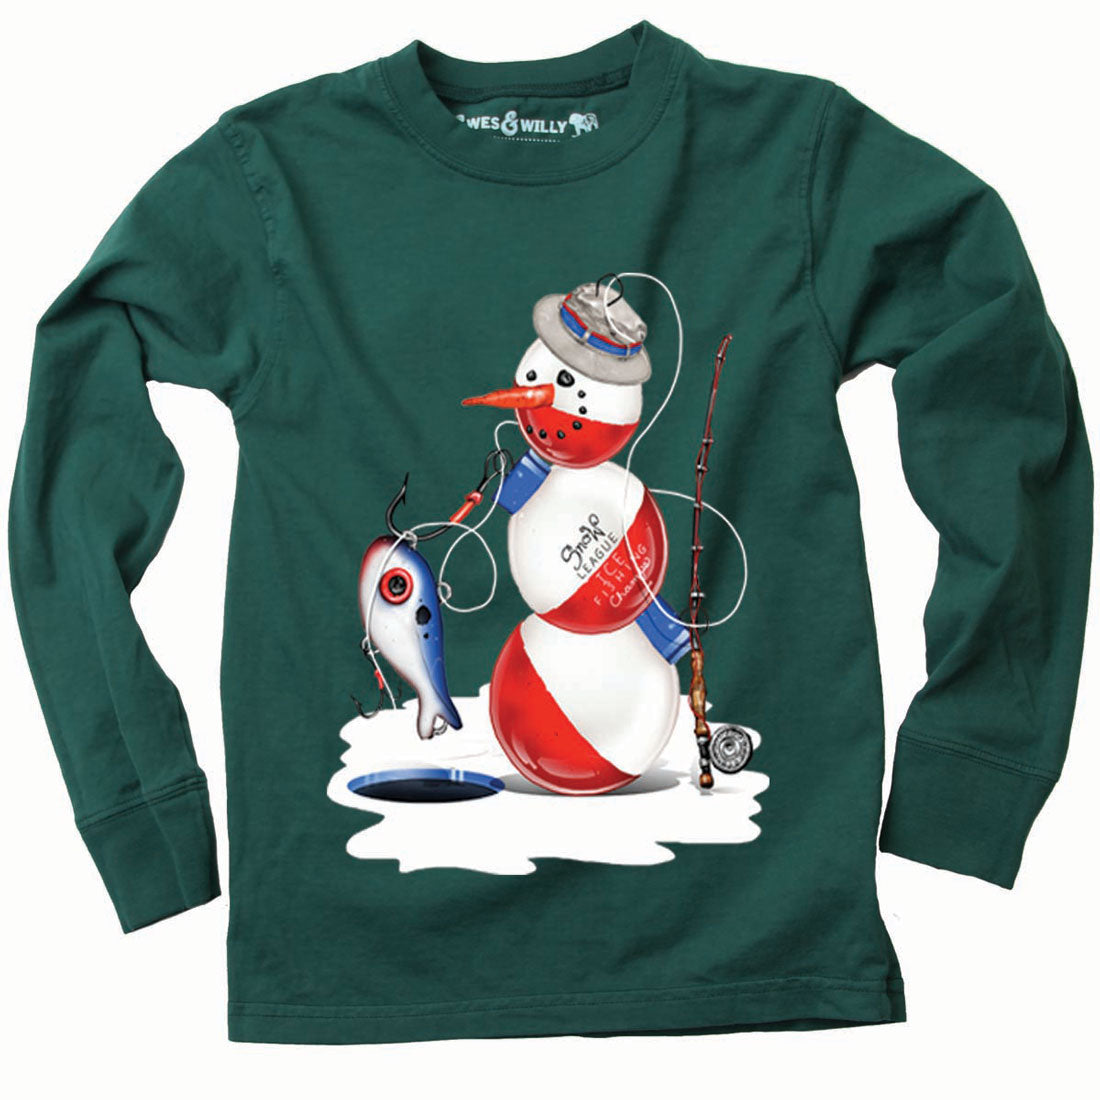 Boys Bobber Snowman Shirt by Wes and Willy